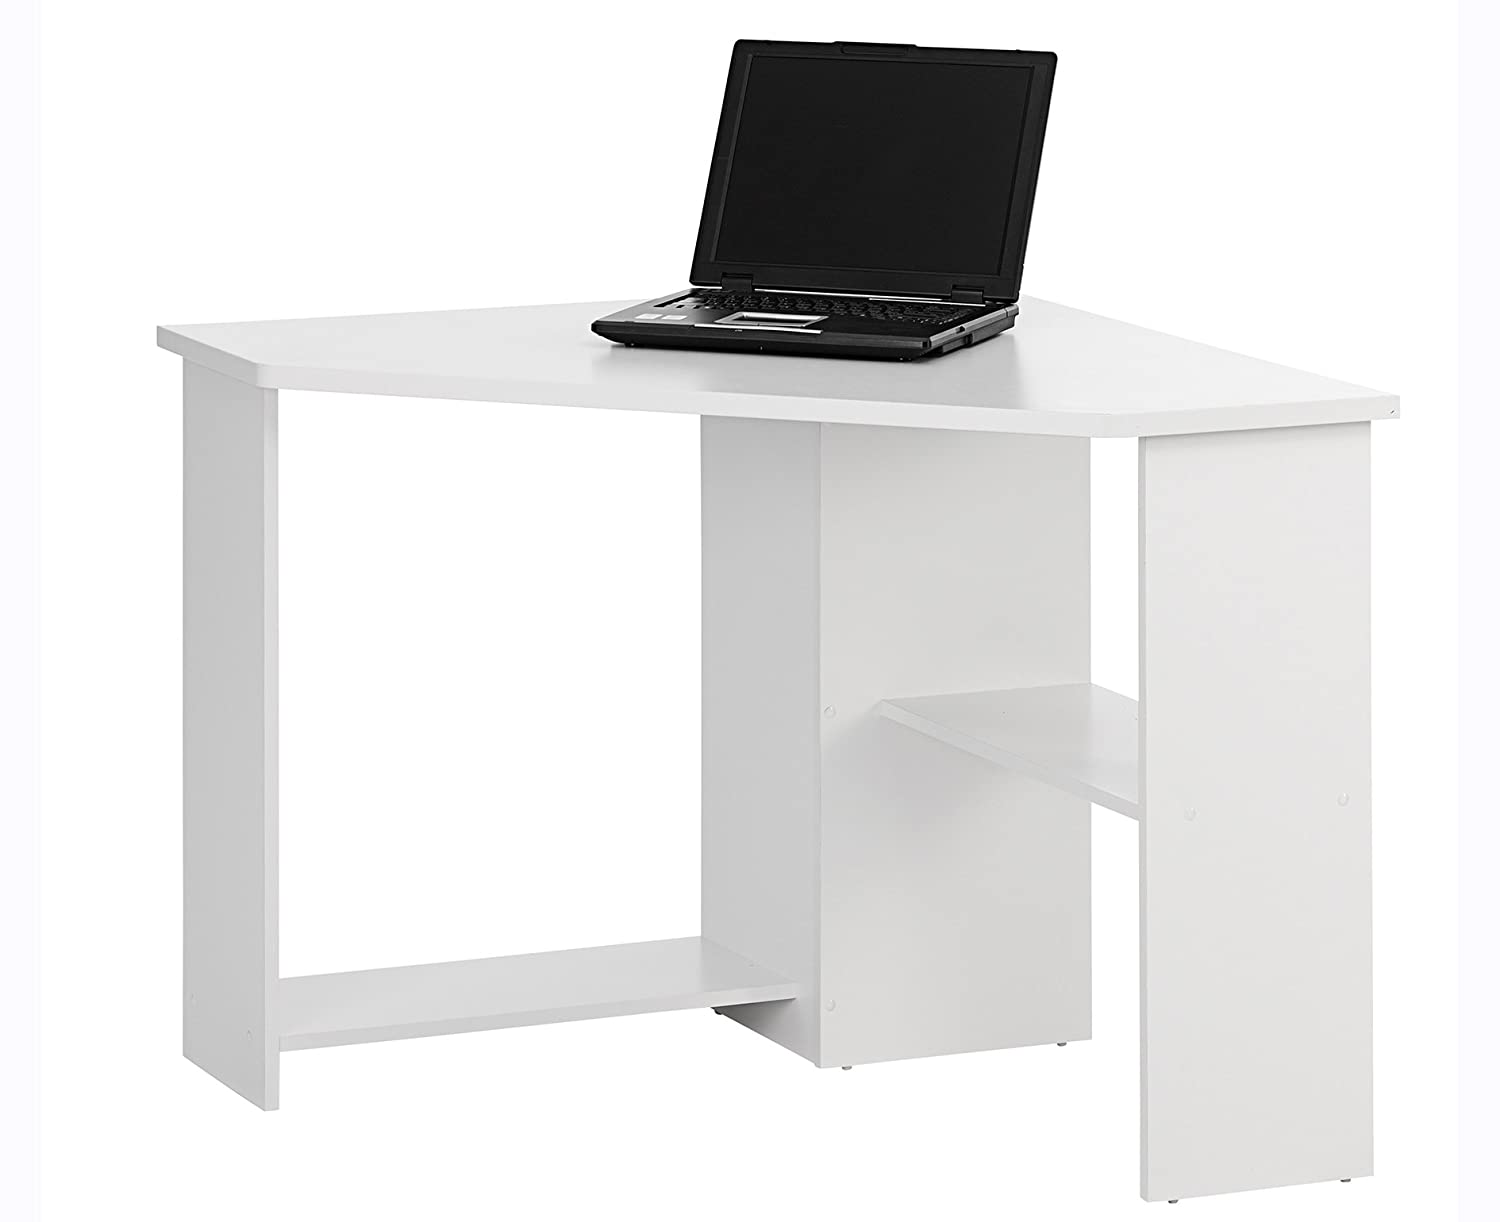 white office corner desk. Bray Corner Home Office Desk - Color: White Finish: Amazon.co.uk: Kitchen \u0026 C